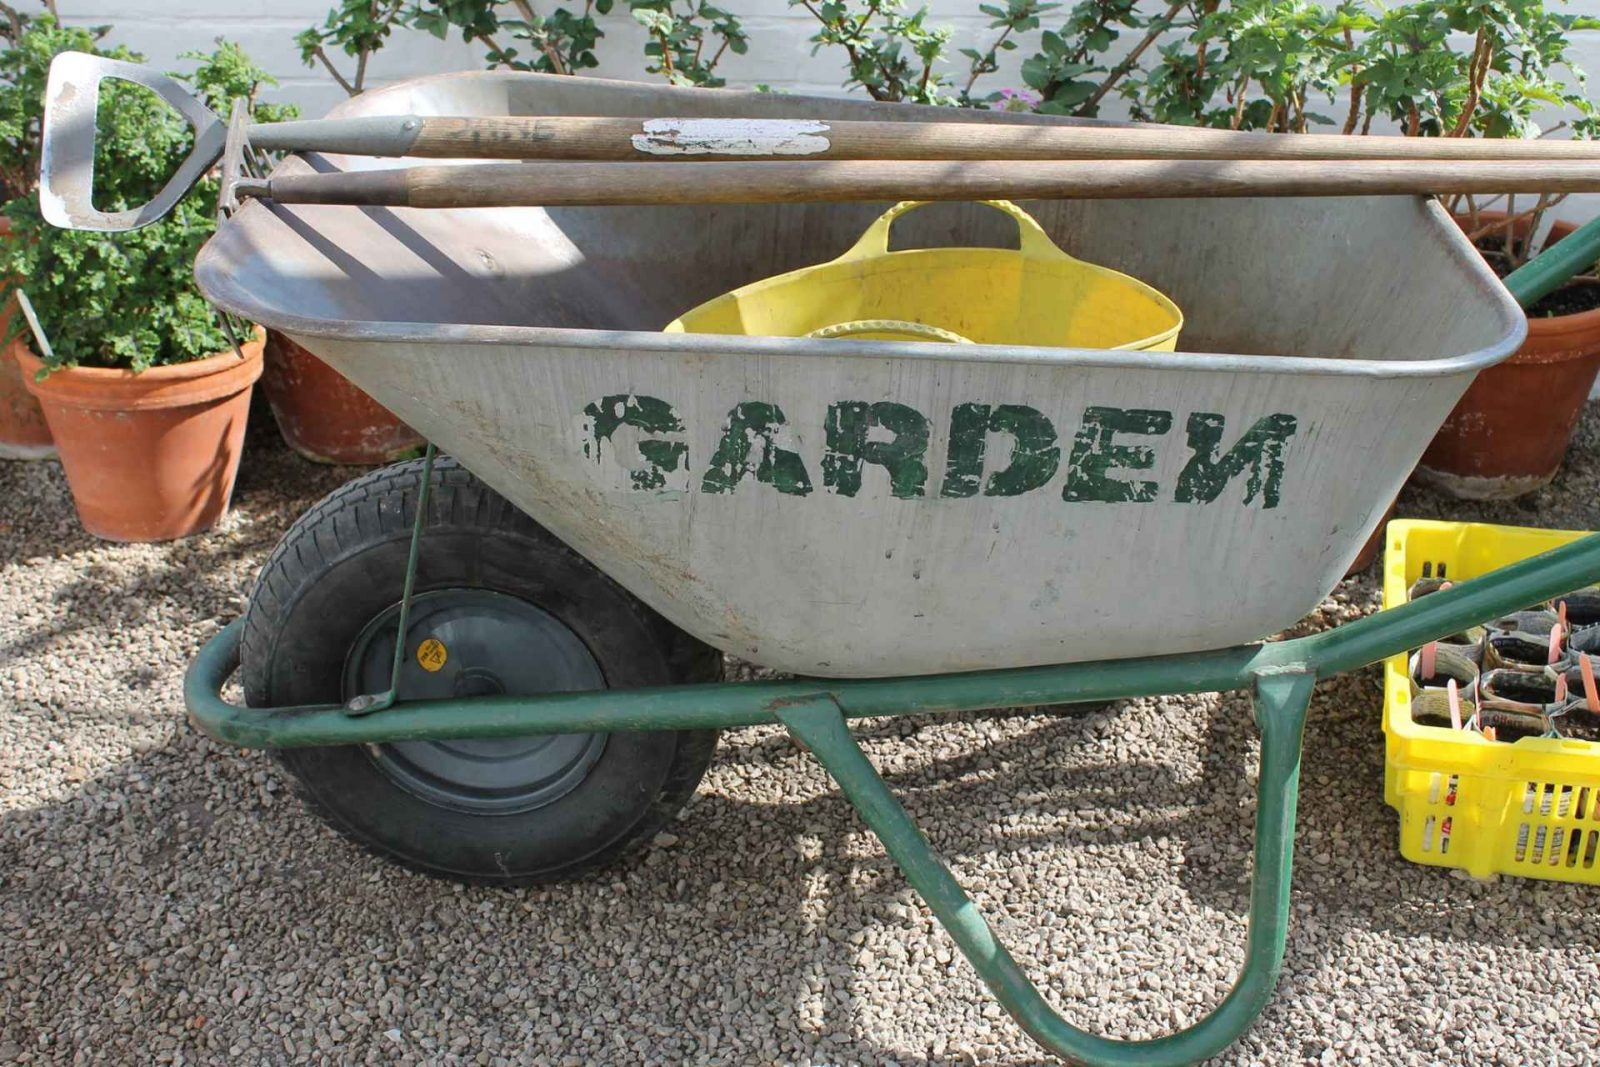 Wheelbarrow, hoe and garden tools. 5 ways to get teenagers to enjoy the garden on Falcondale Life blog.